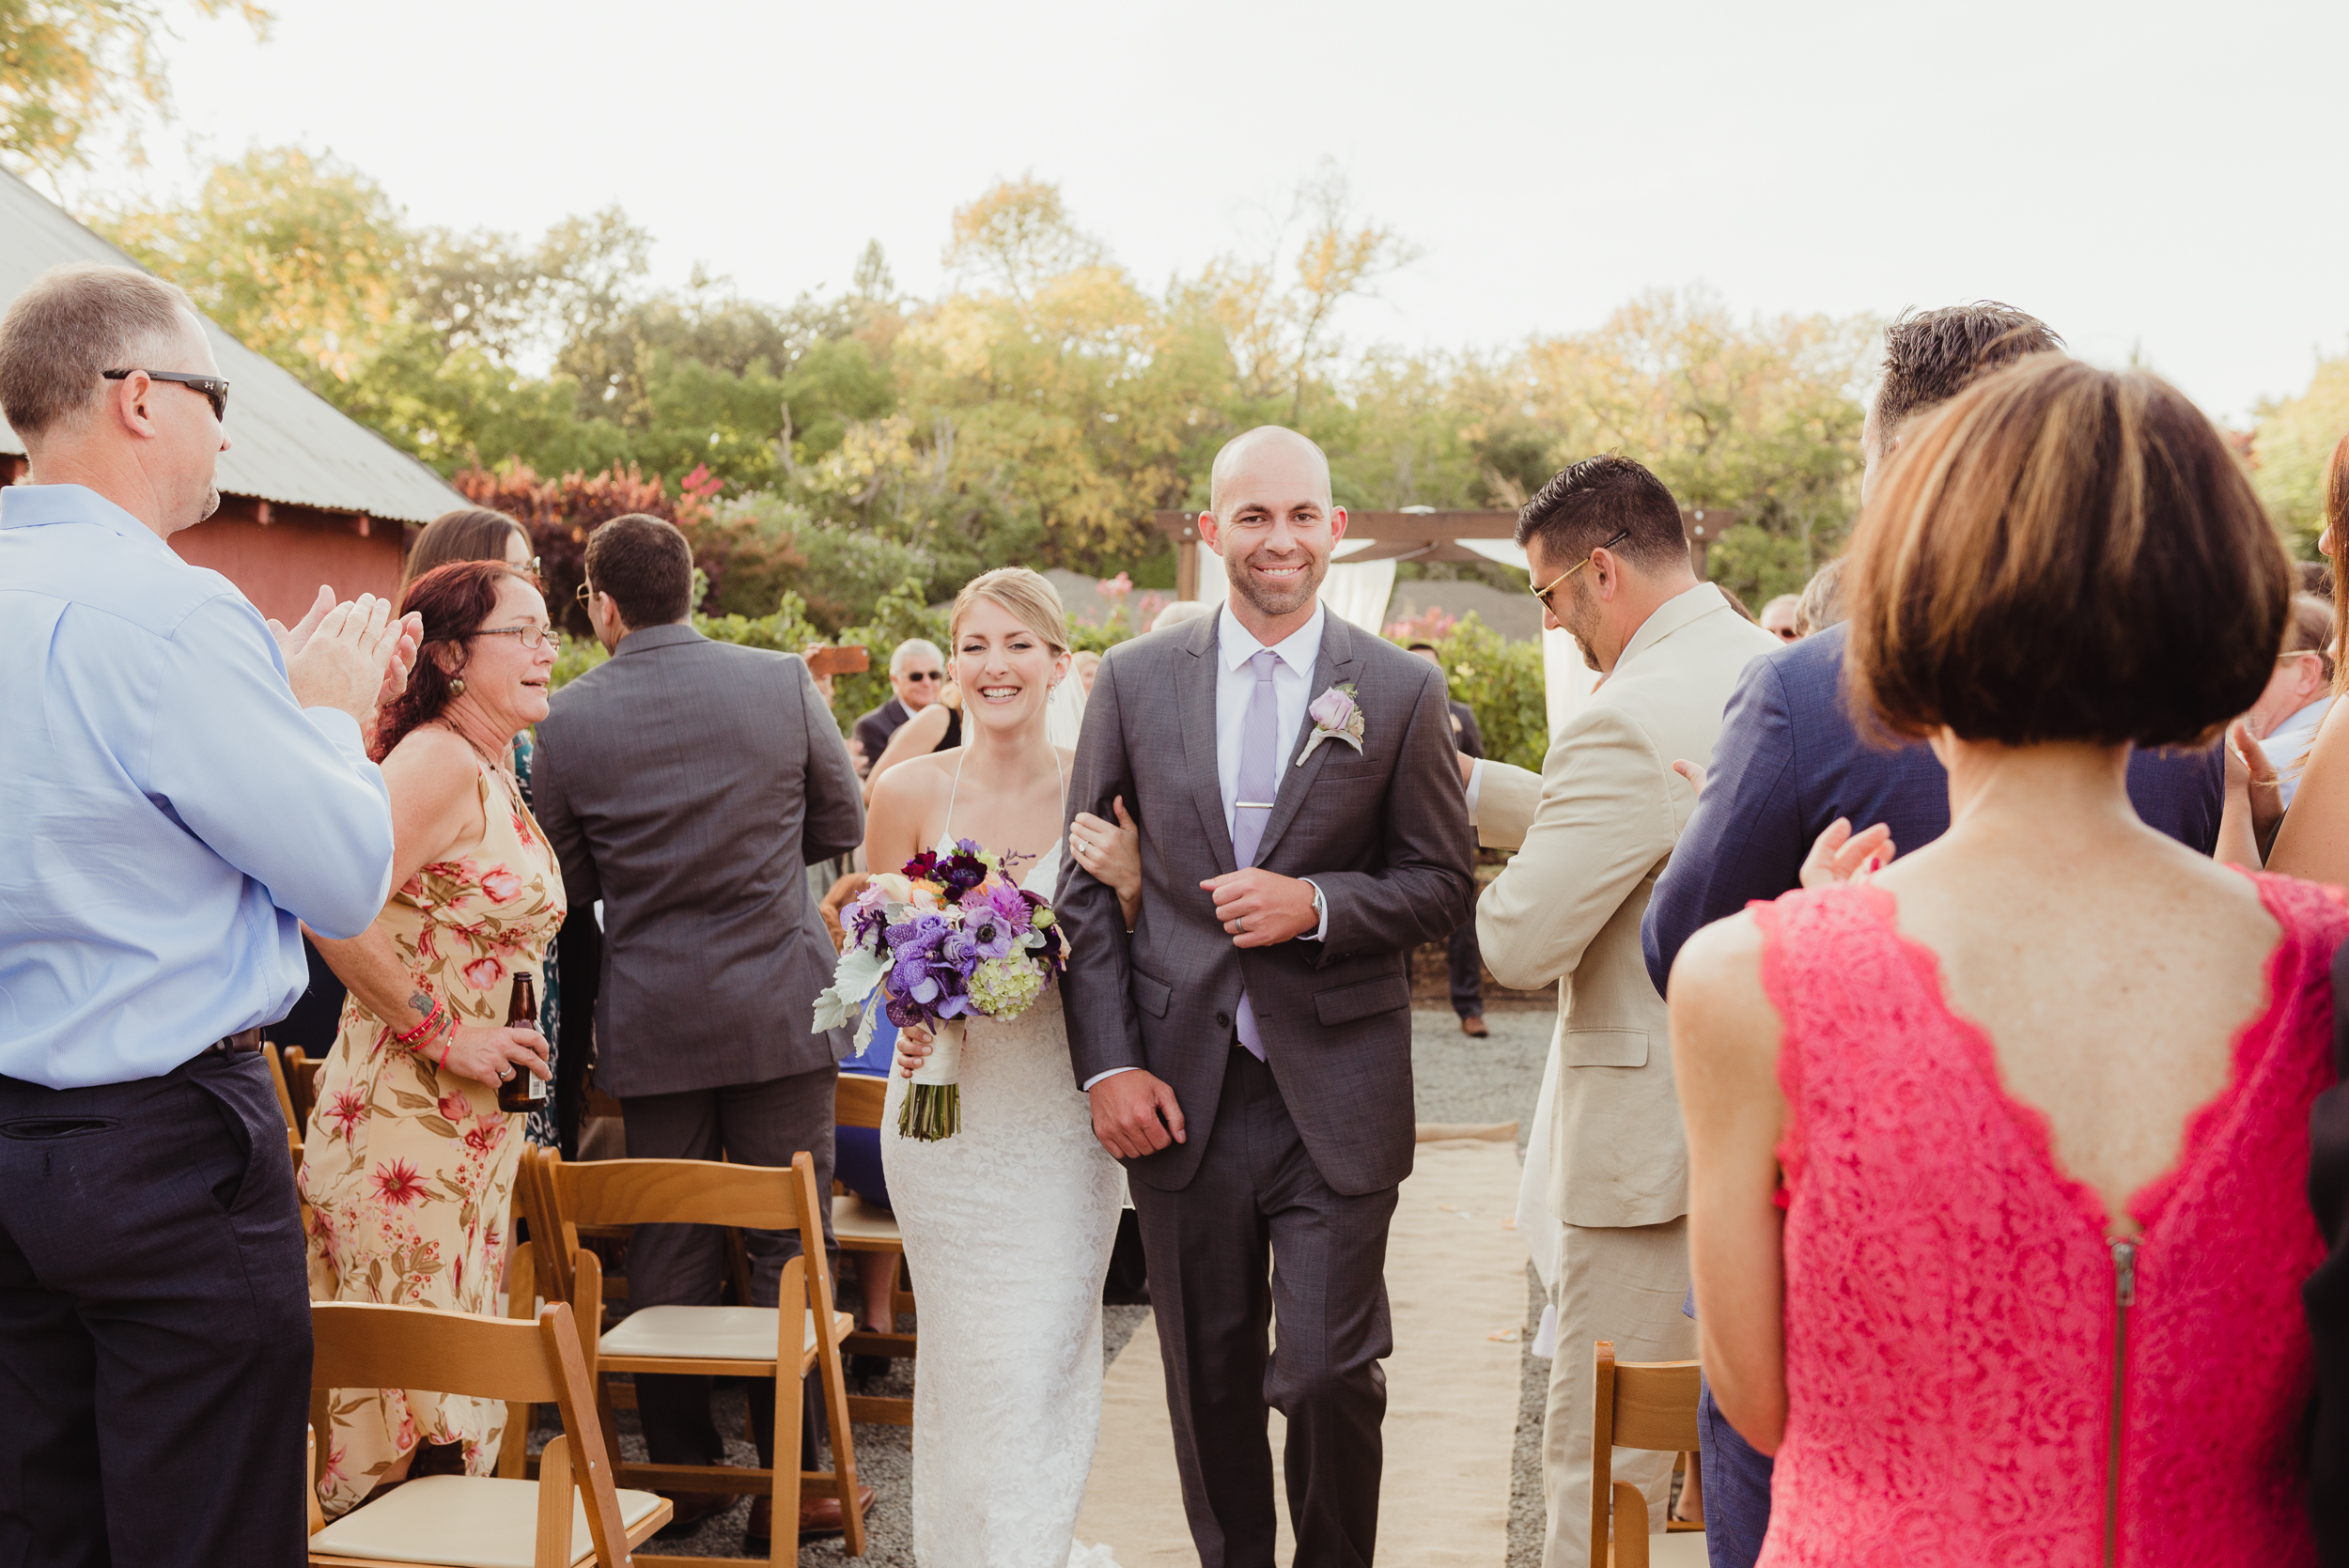 44-wine-country-calistoga-wedding-vivianchen-322.jpg